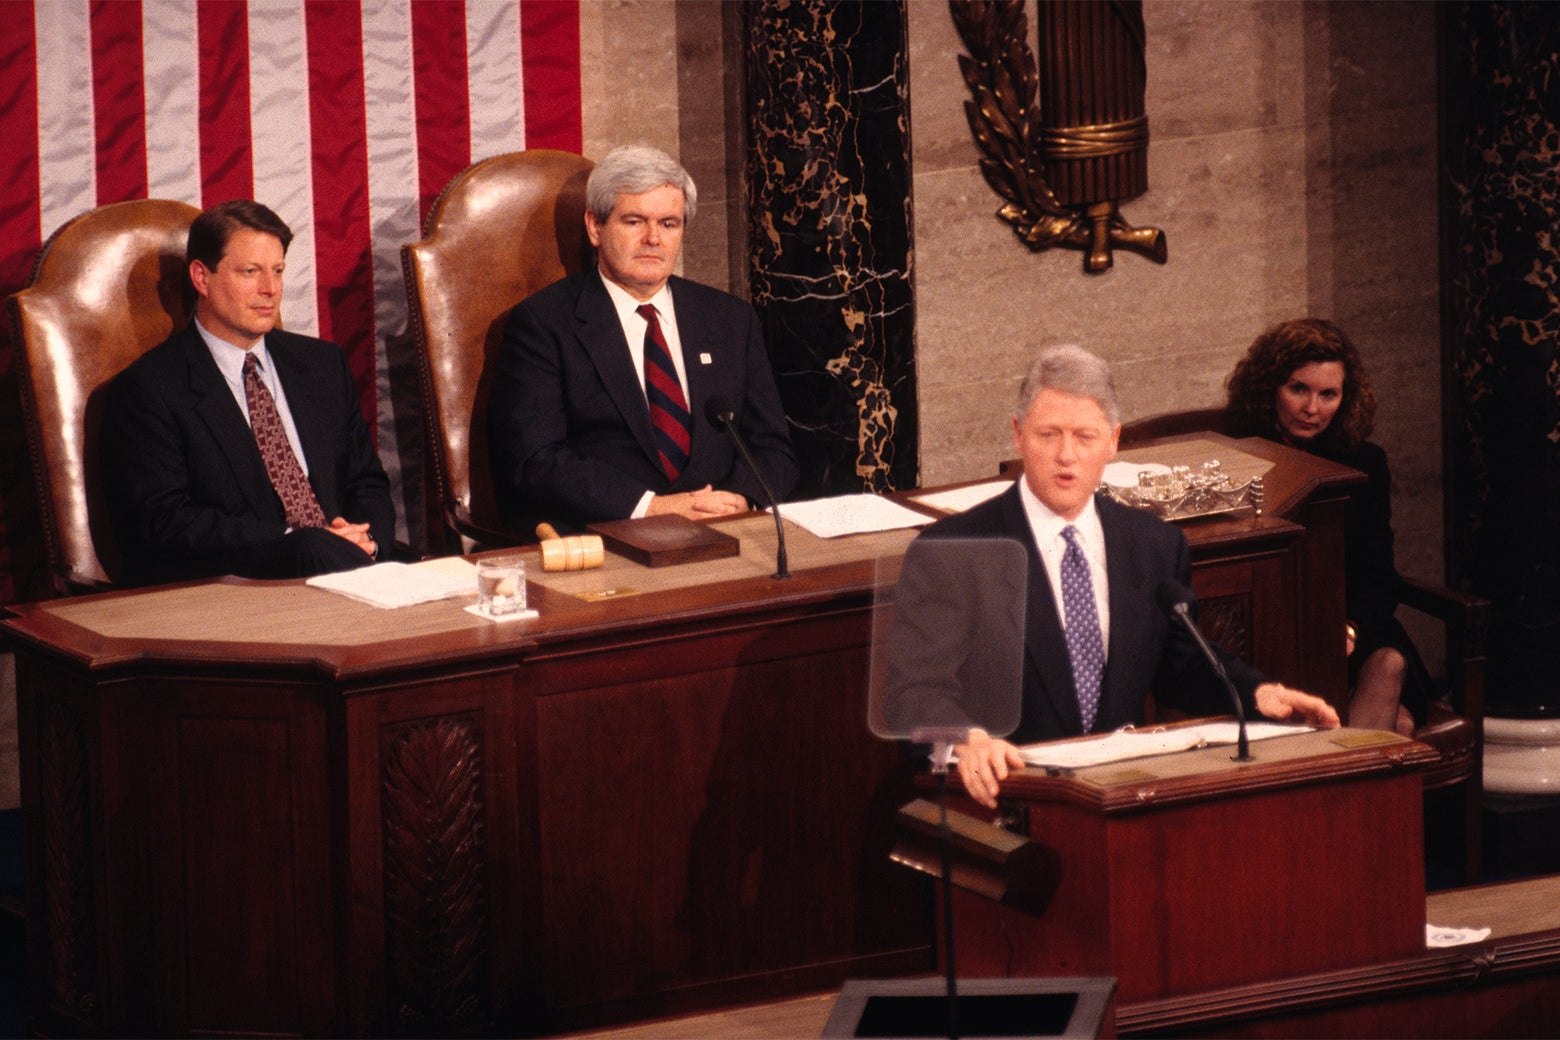 Presidemt Bill Climtom delivers his State of the Uniom address in 1995.